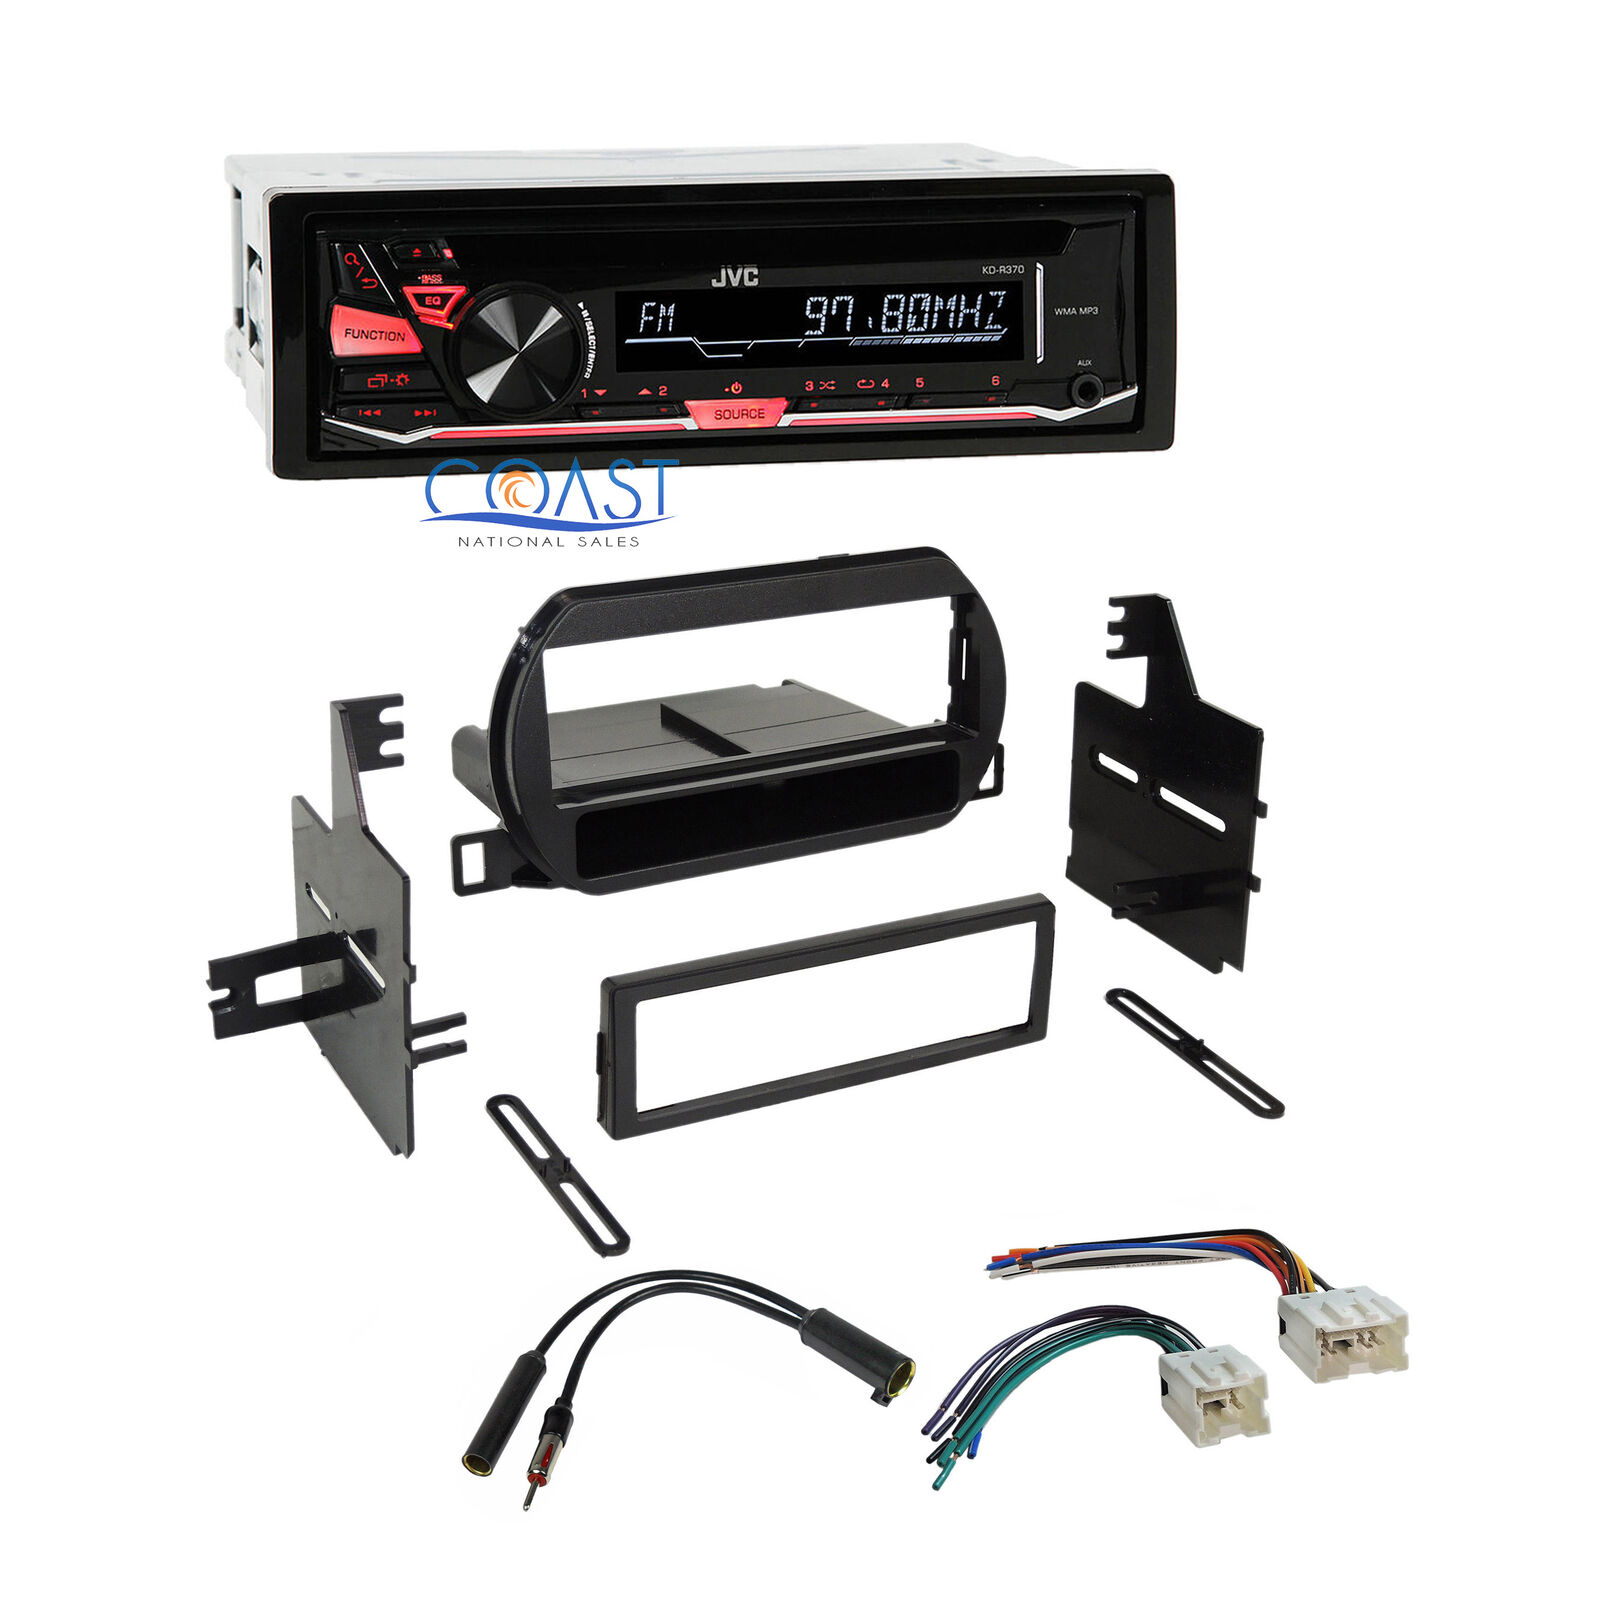 Jvc Car Stereo Single Din Dash Kit Wire Harness Antenna For 02 04 Nissan Wiring 1 Of 6free Shipping